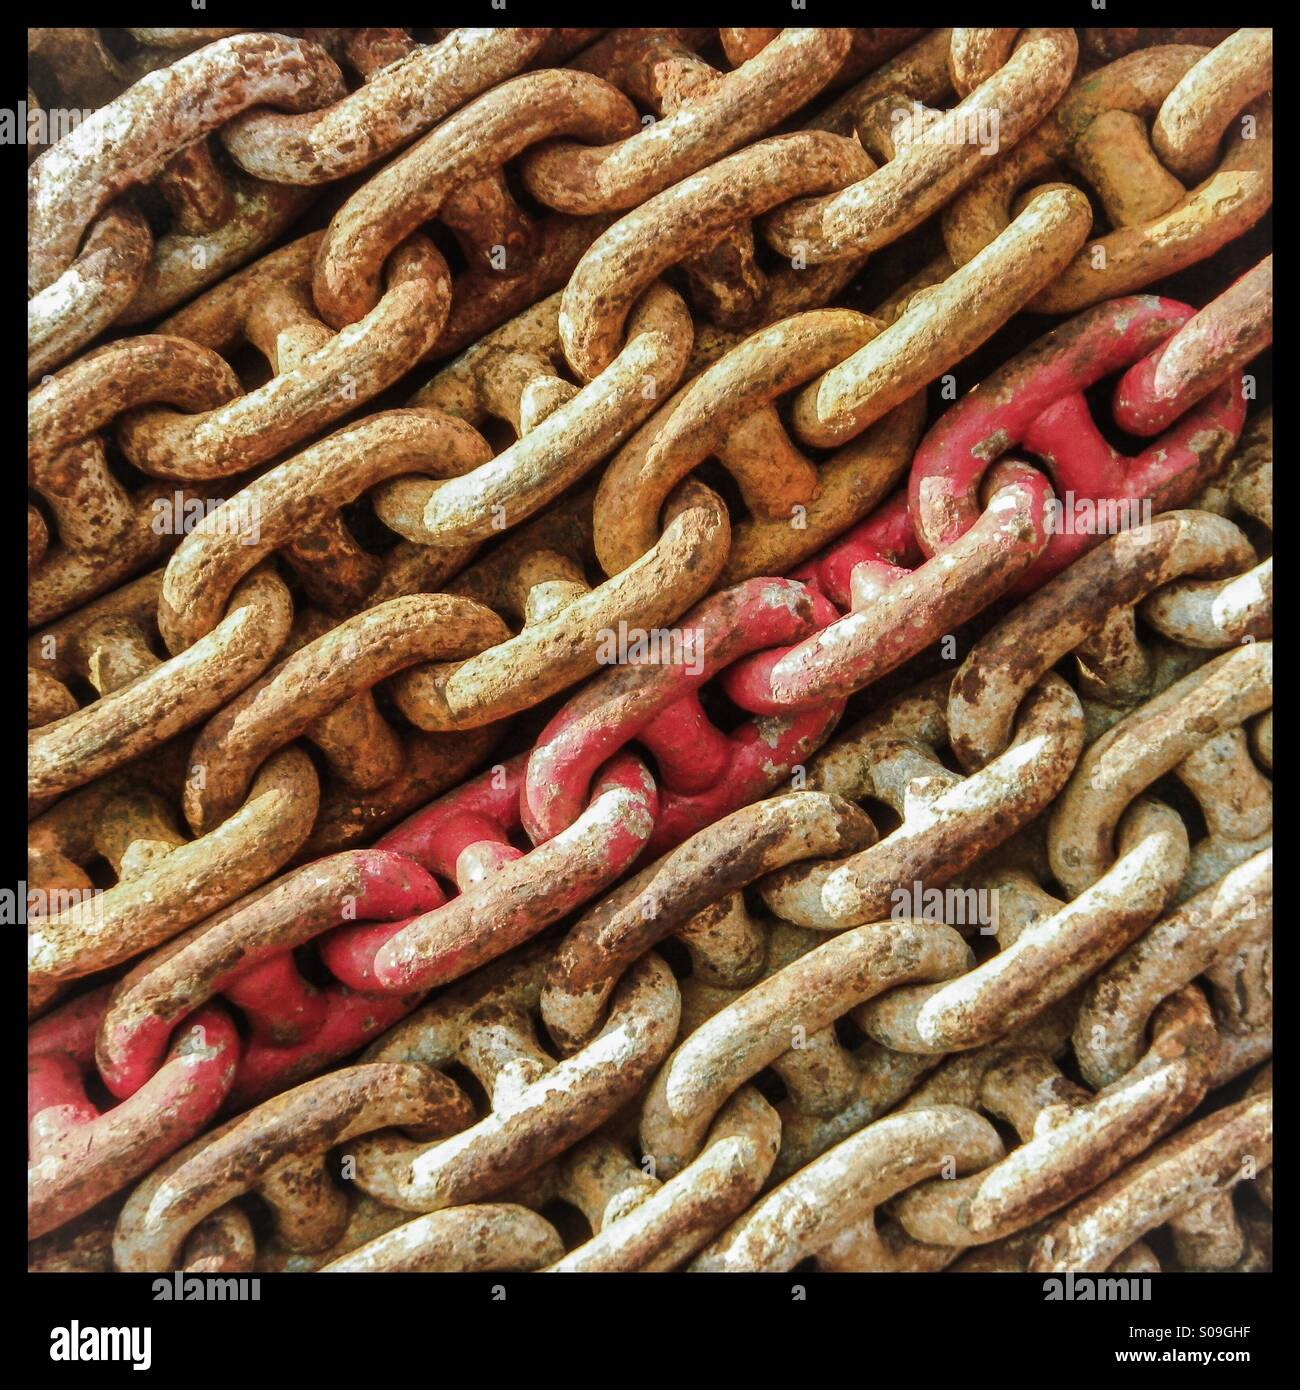 Red chain - Stock Image